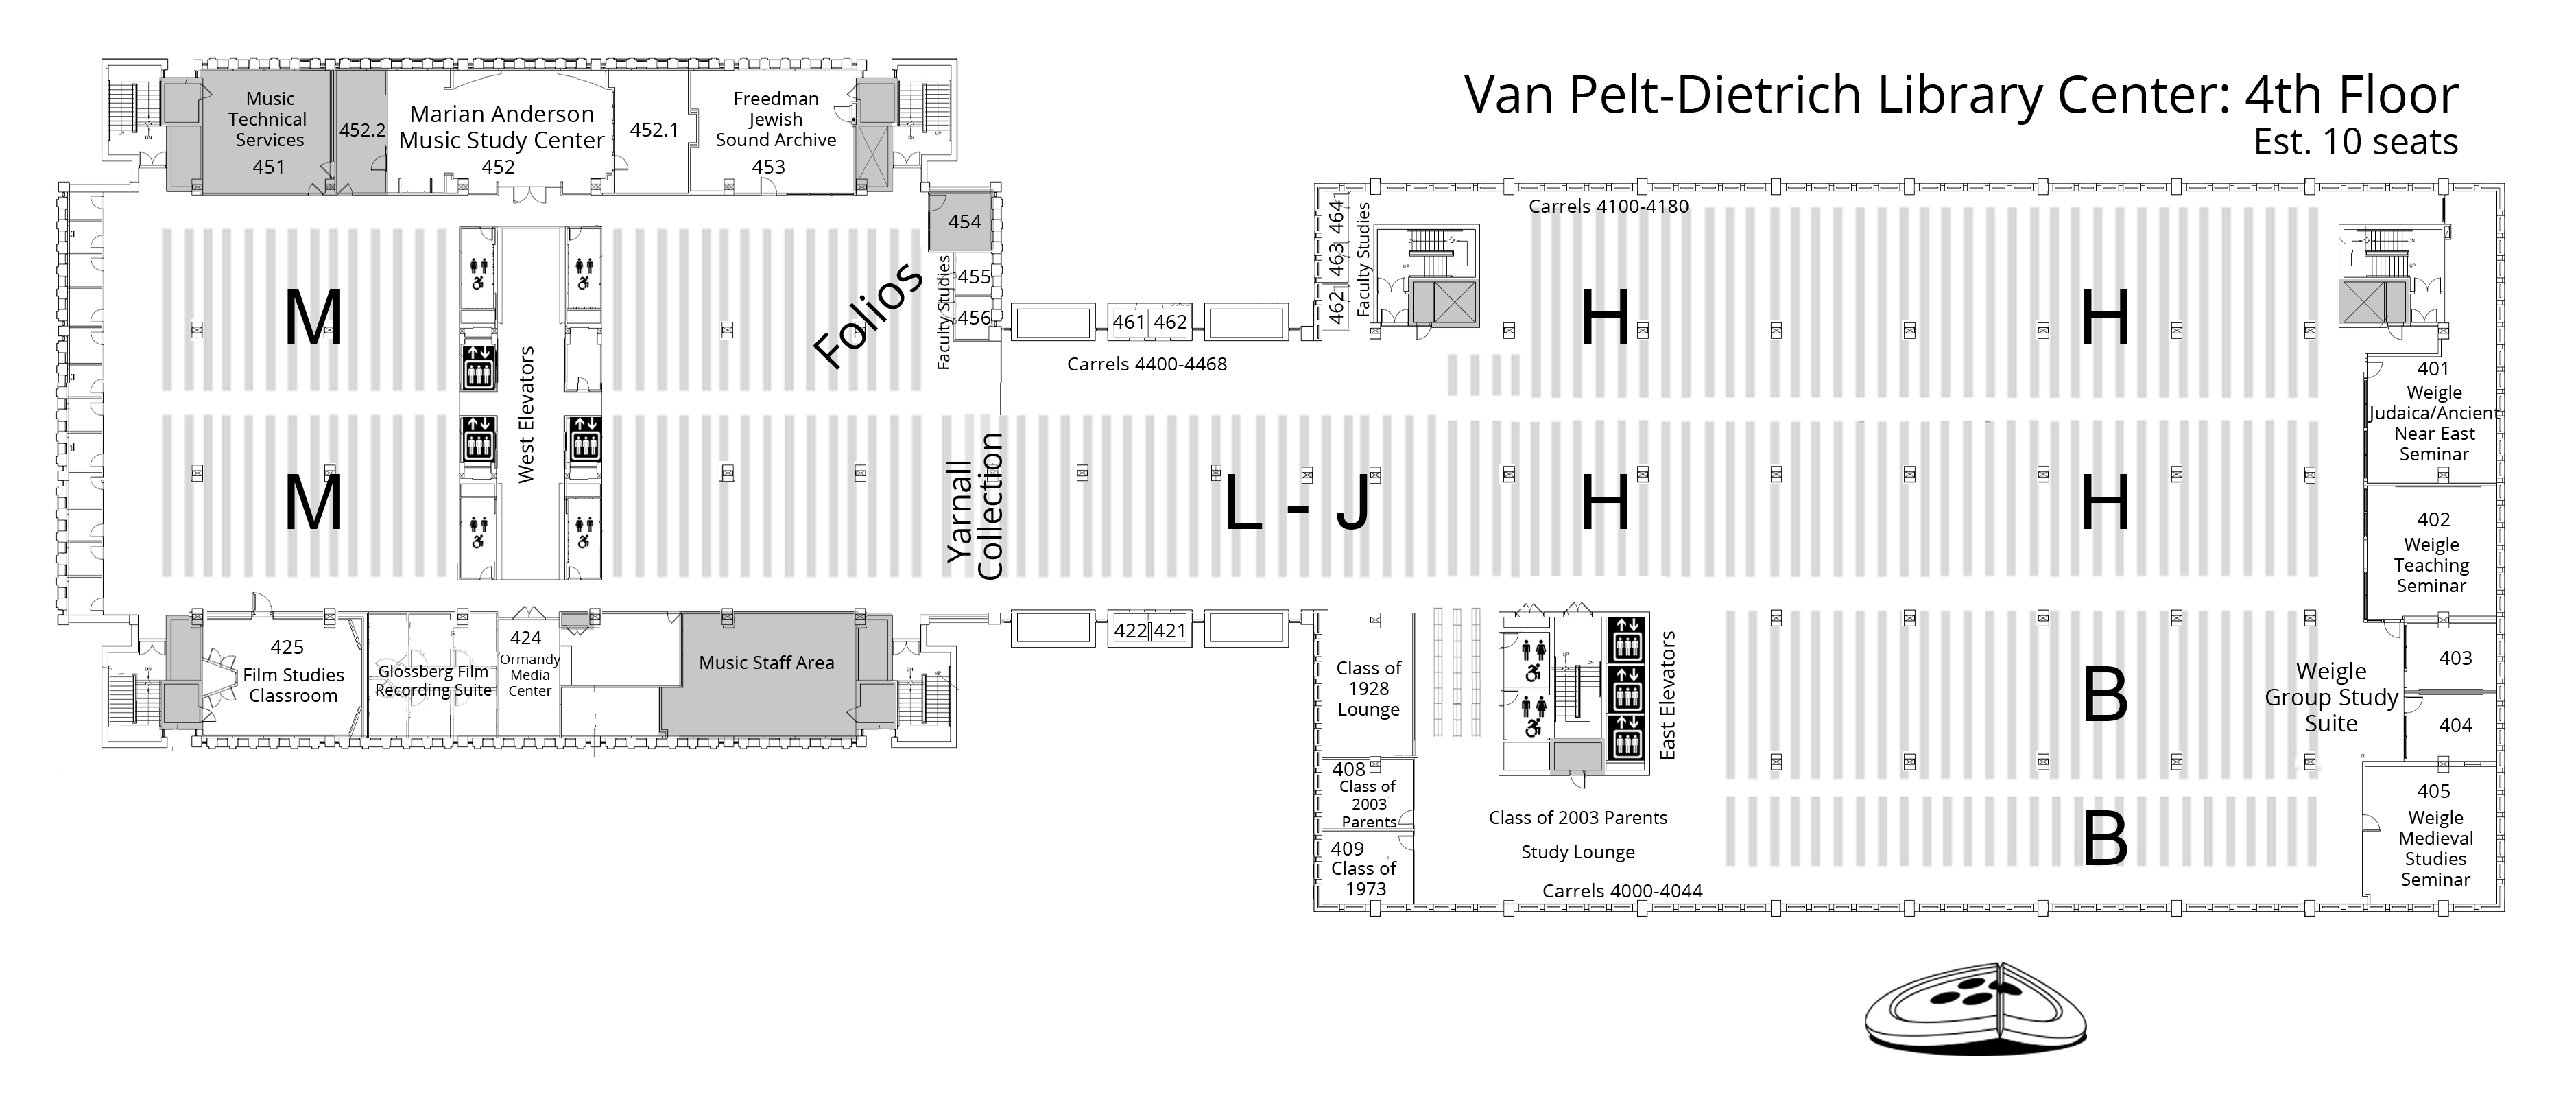 Van Pelt-Dietrich Library Center, fourth floor plan